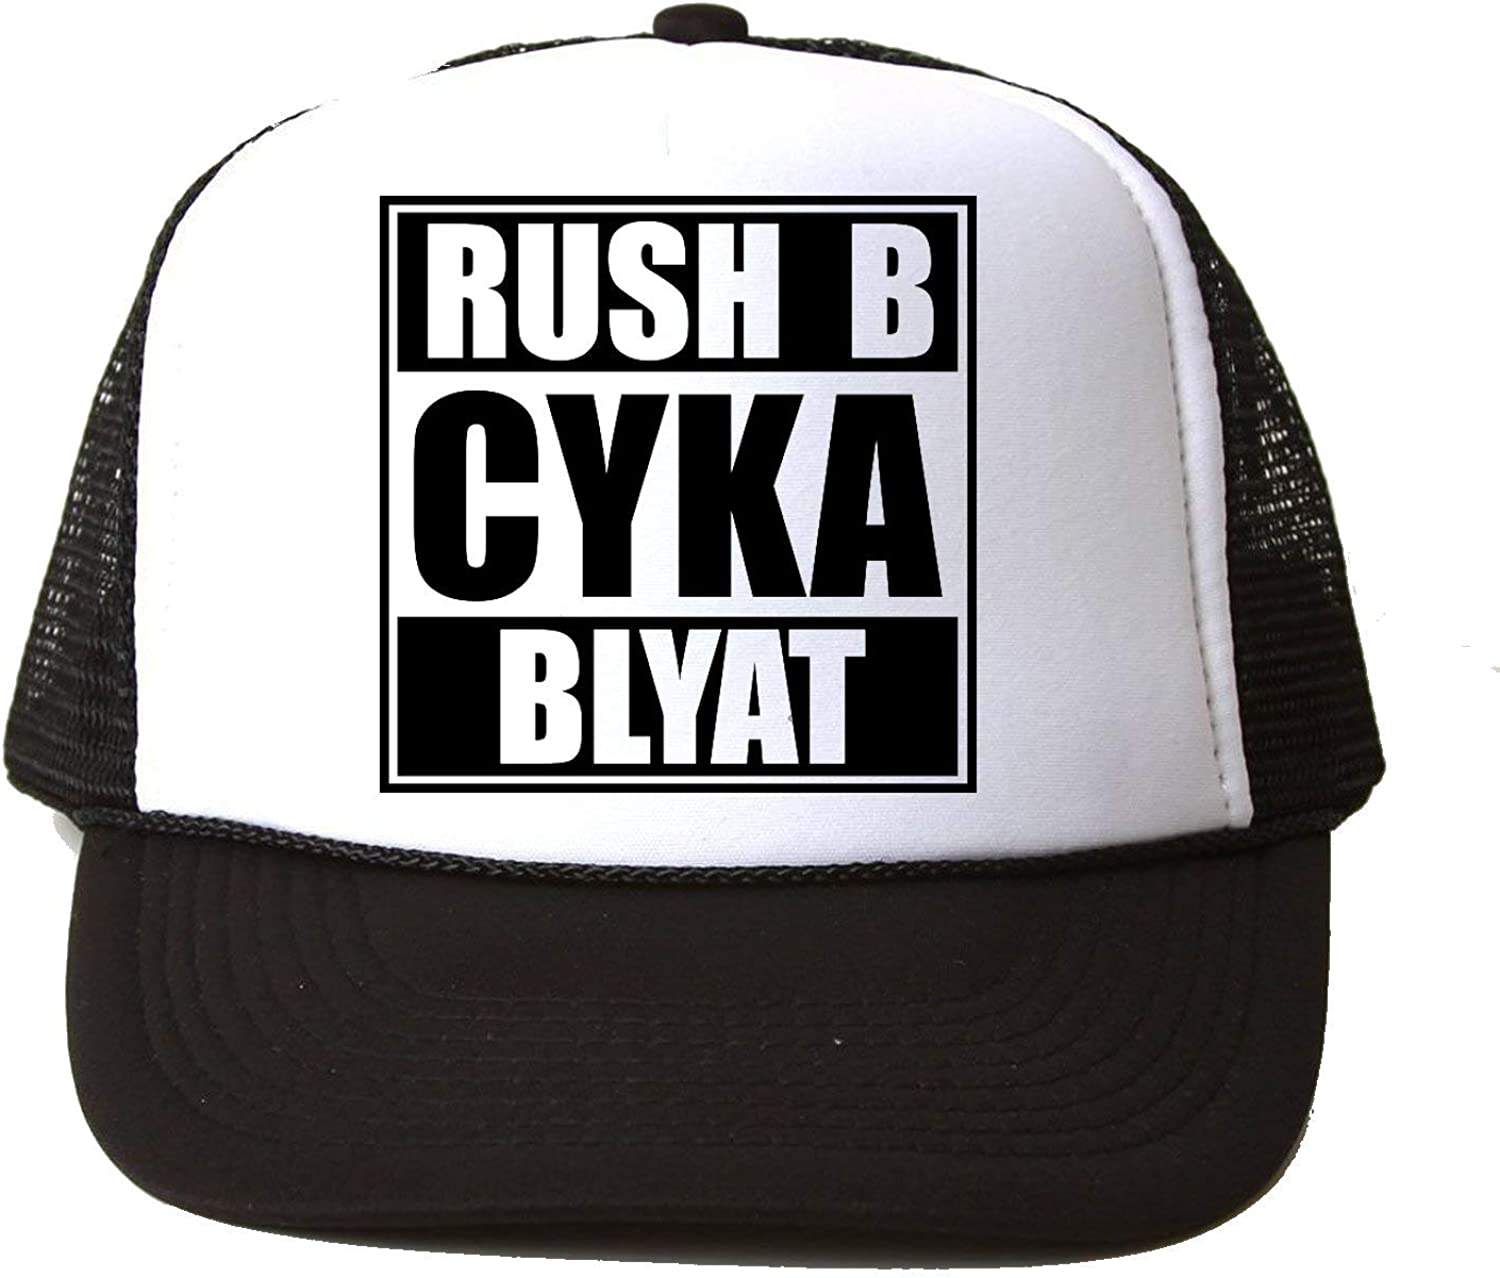 Rush B Cyka Blyat Baseball Cap Hat Gorra Unisex One Size: Amazon ...